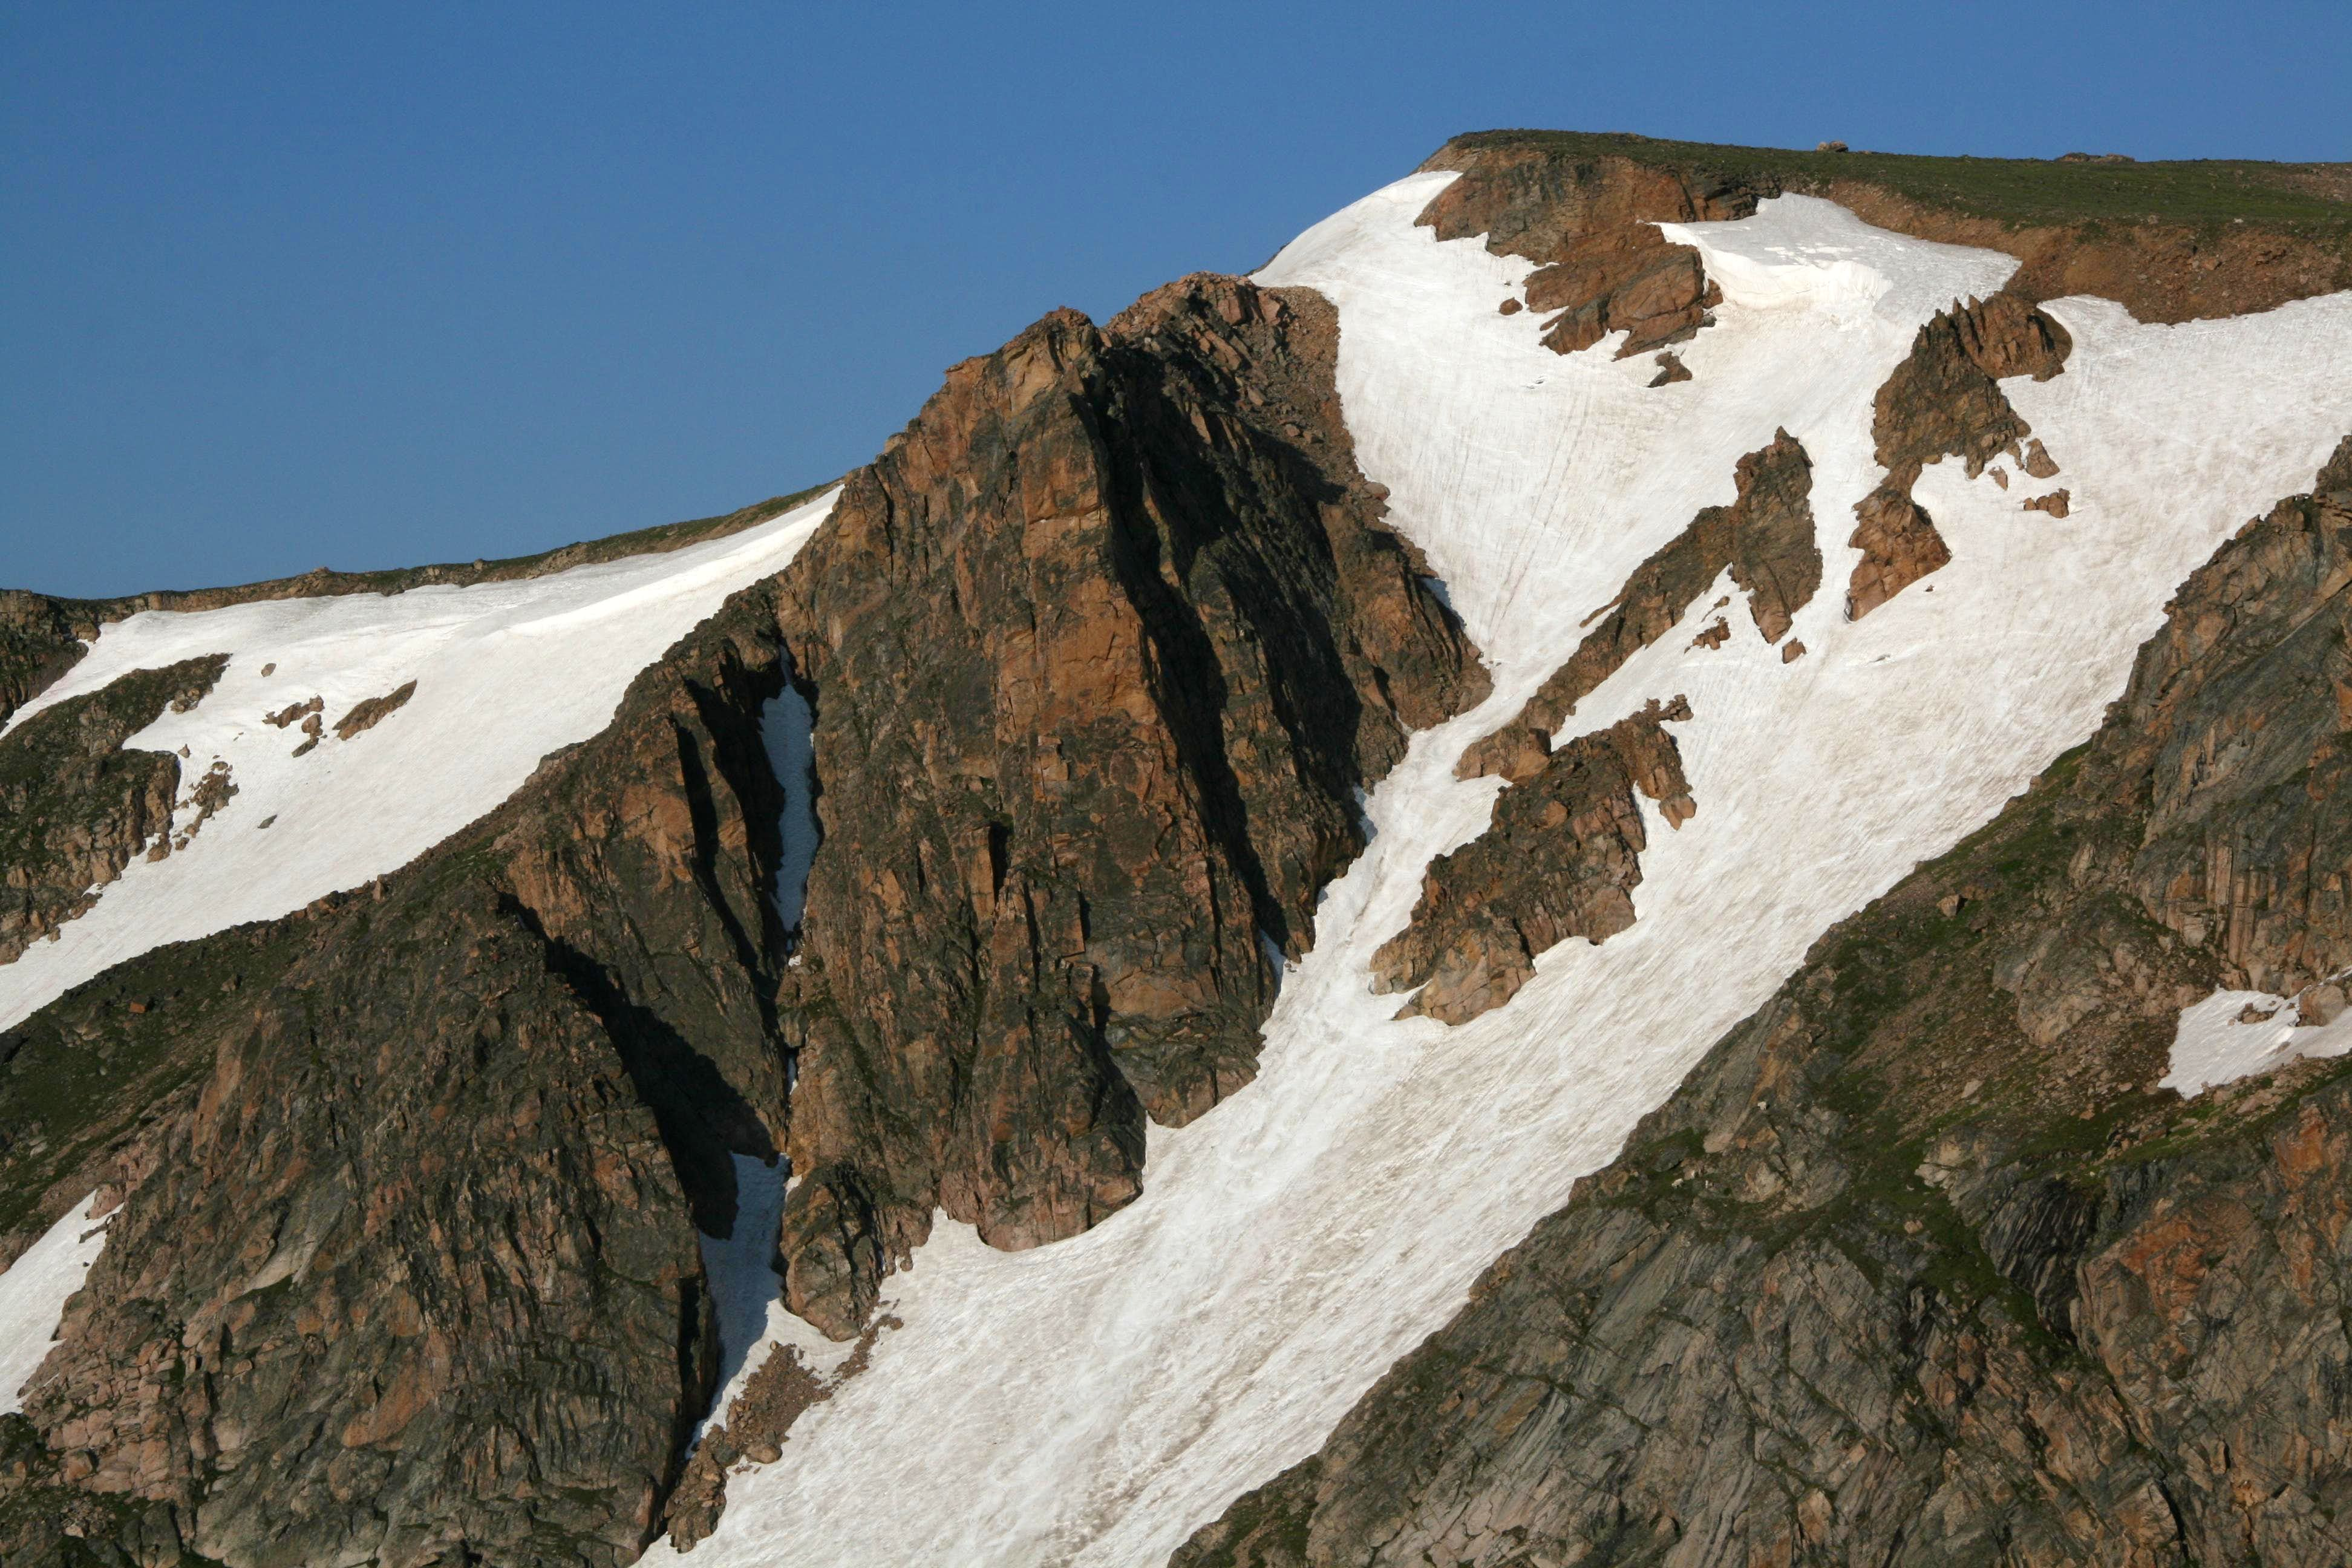 Stockaid Peak